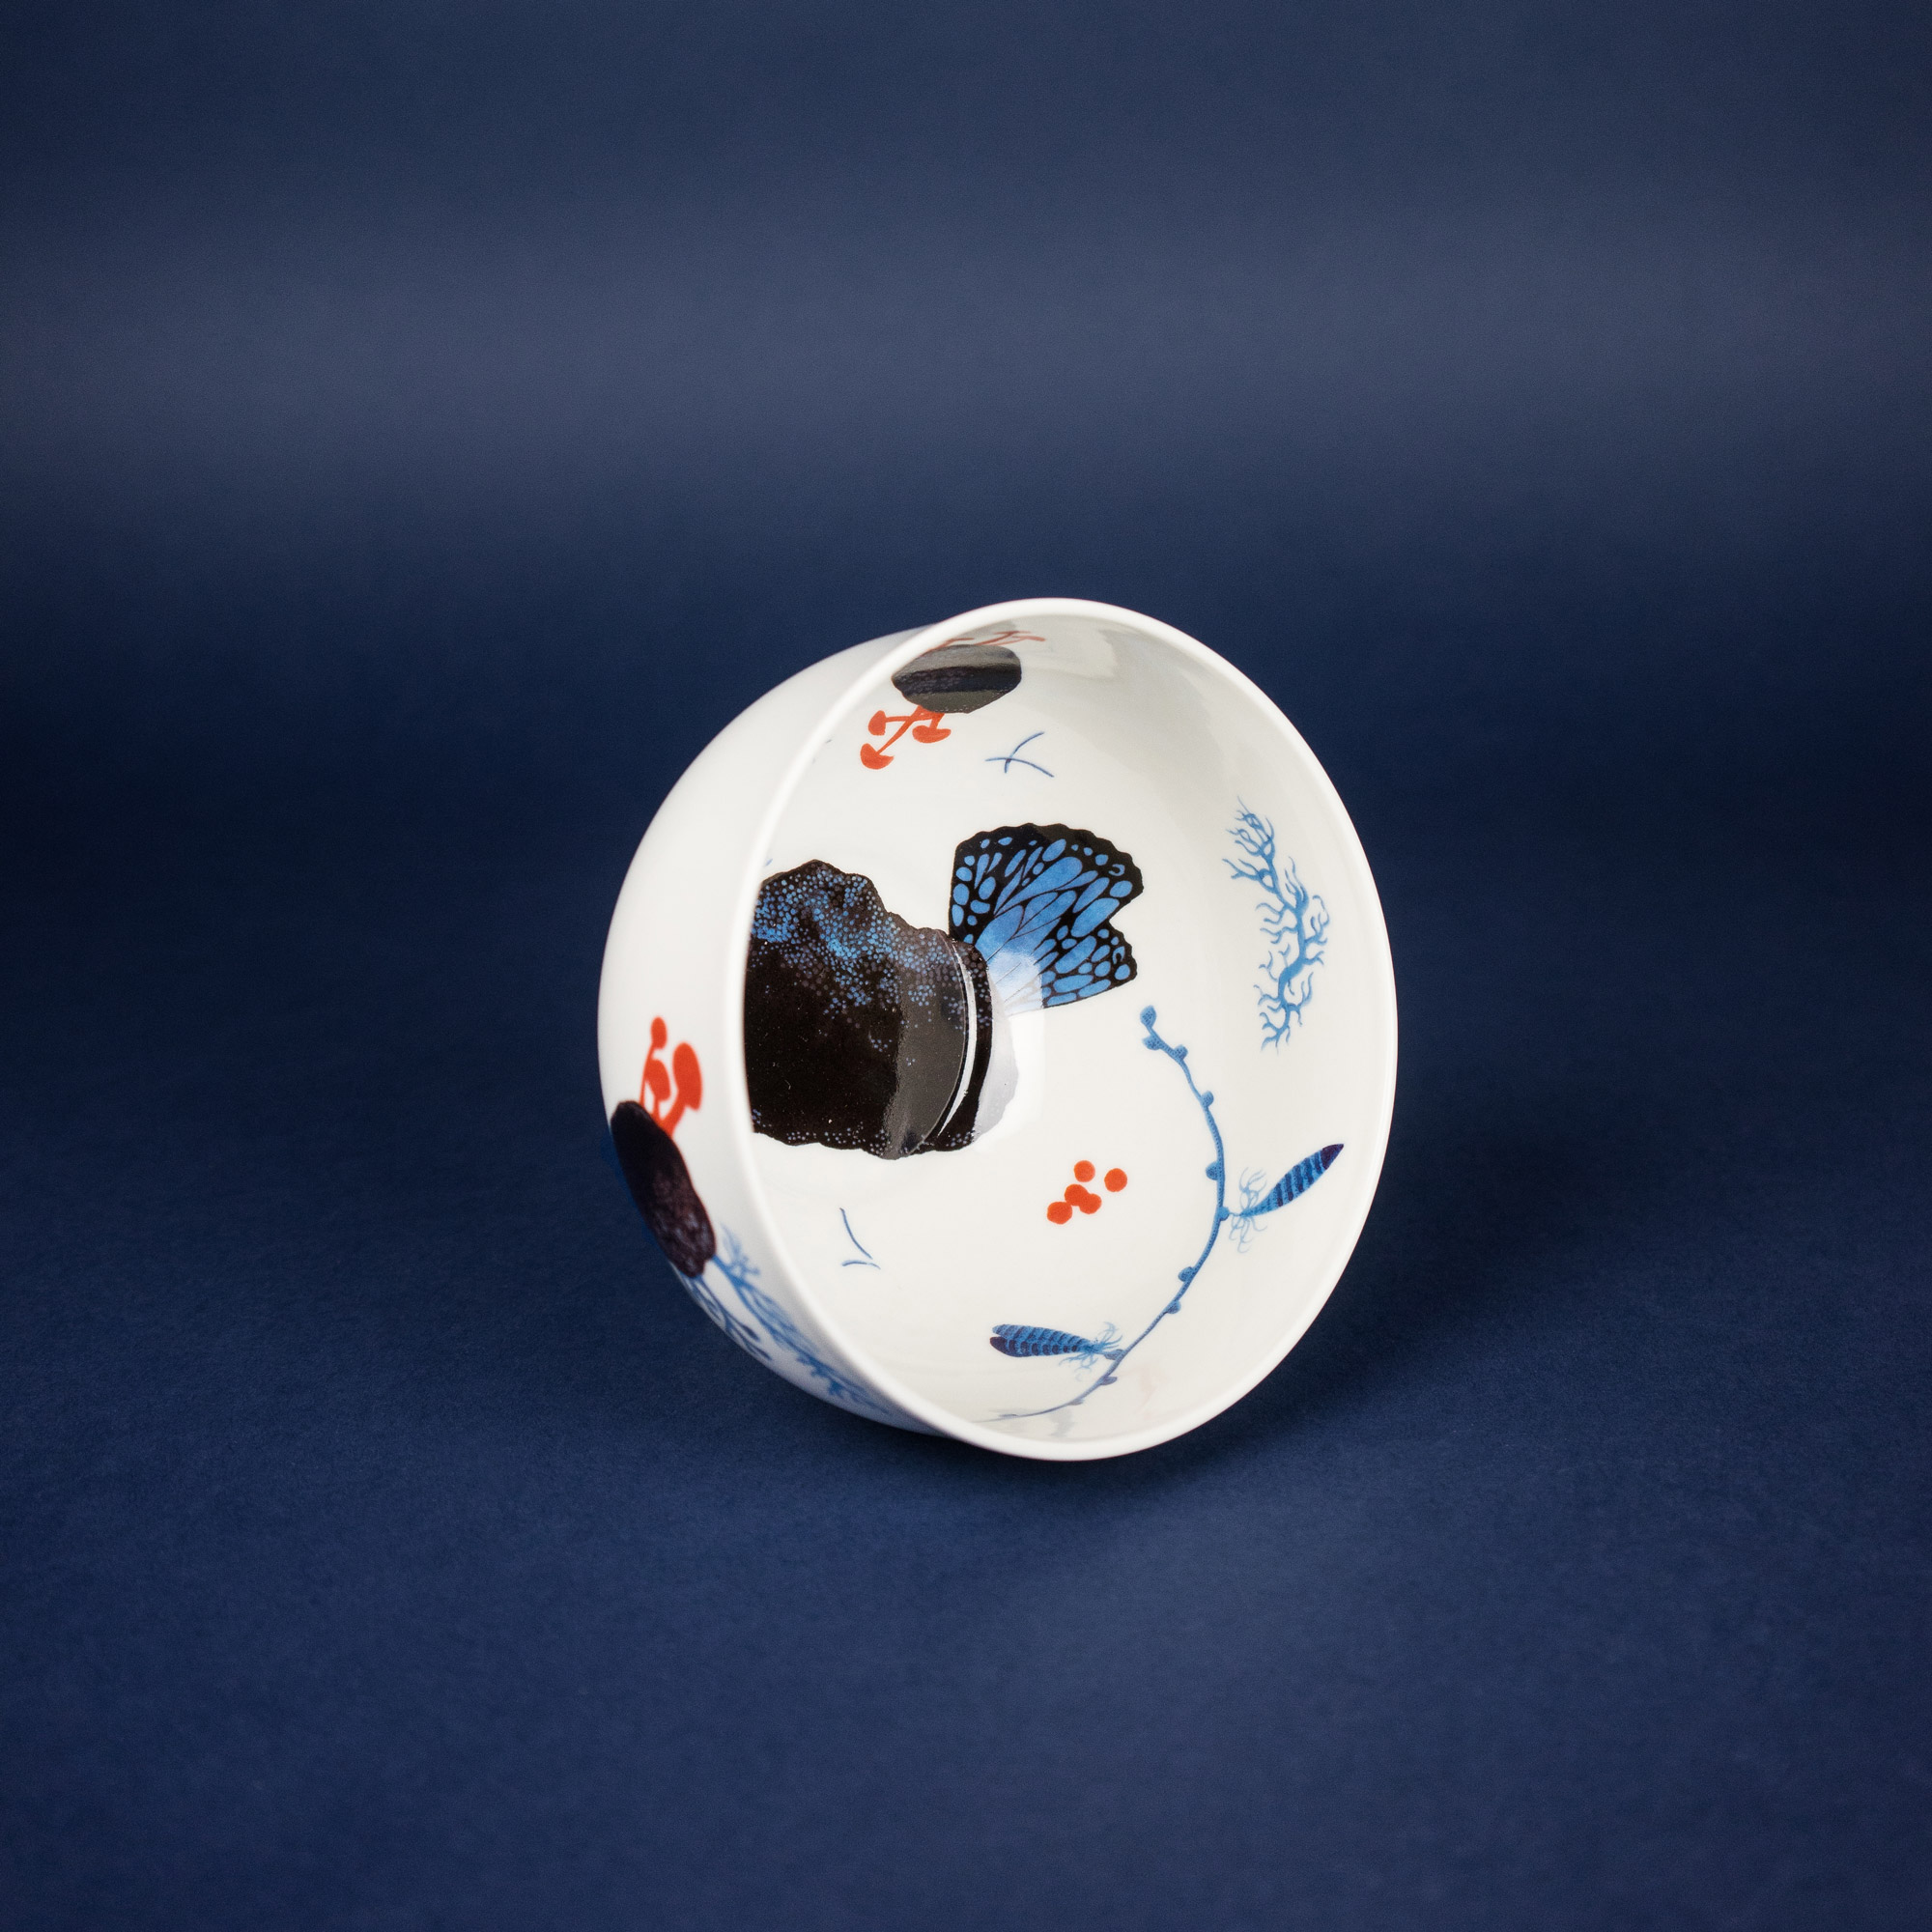 Colourful porcelain bowl by Michal Bacak for Krehky